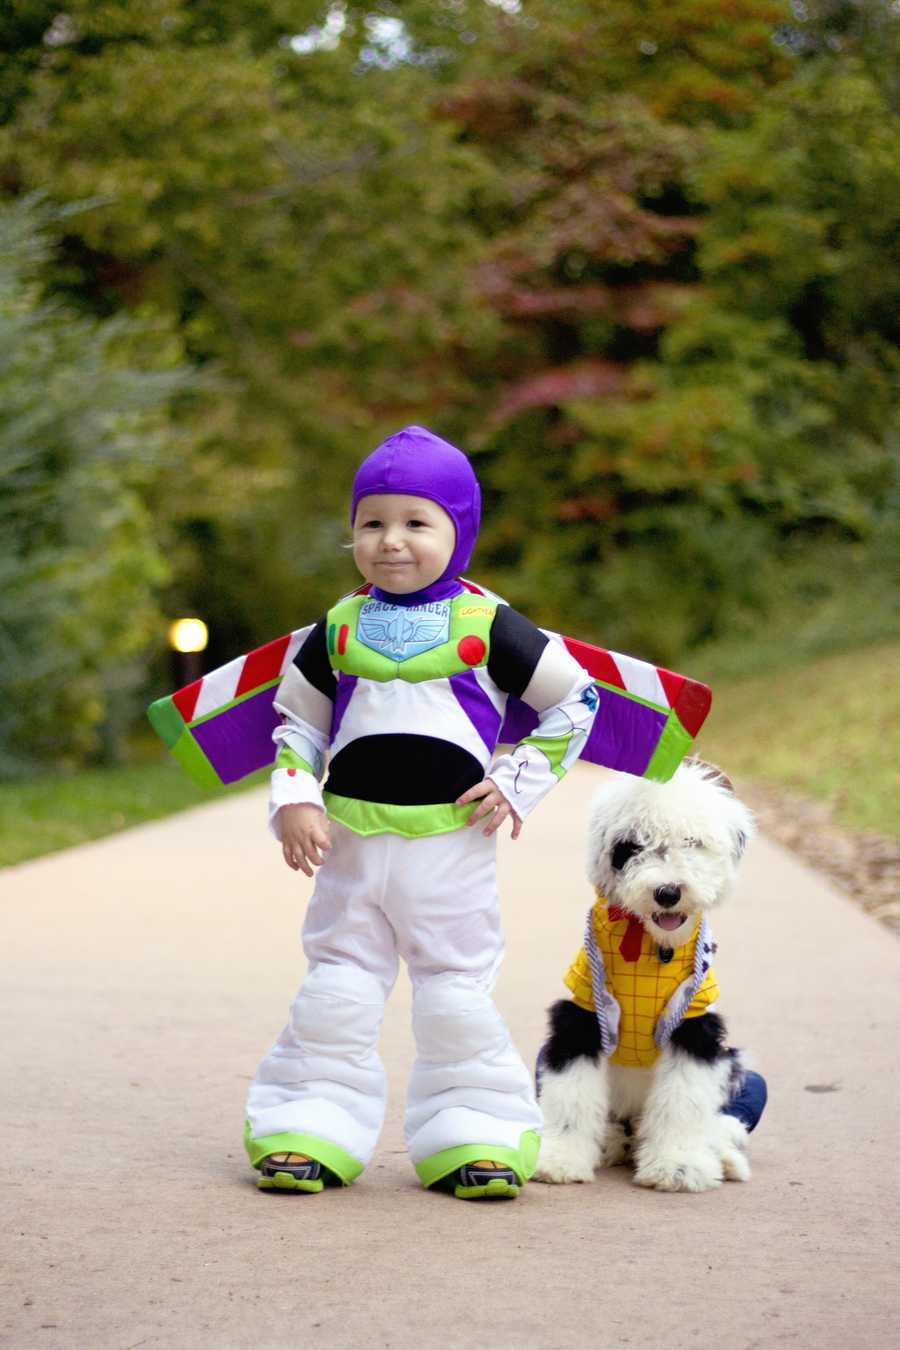 My son and his puppy all dressed up in their Halloween costumes! Can't wait for Trick Or Treating! :)